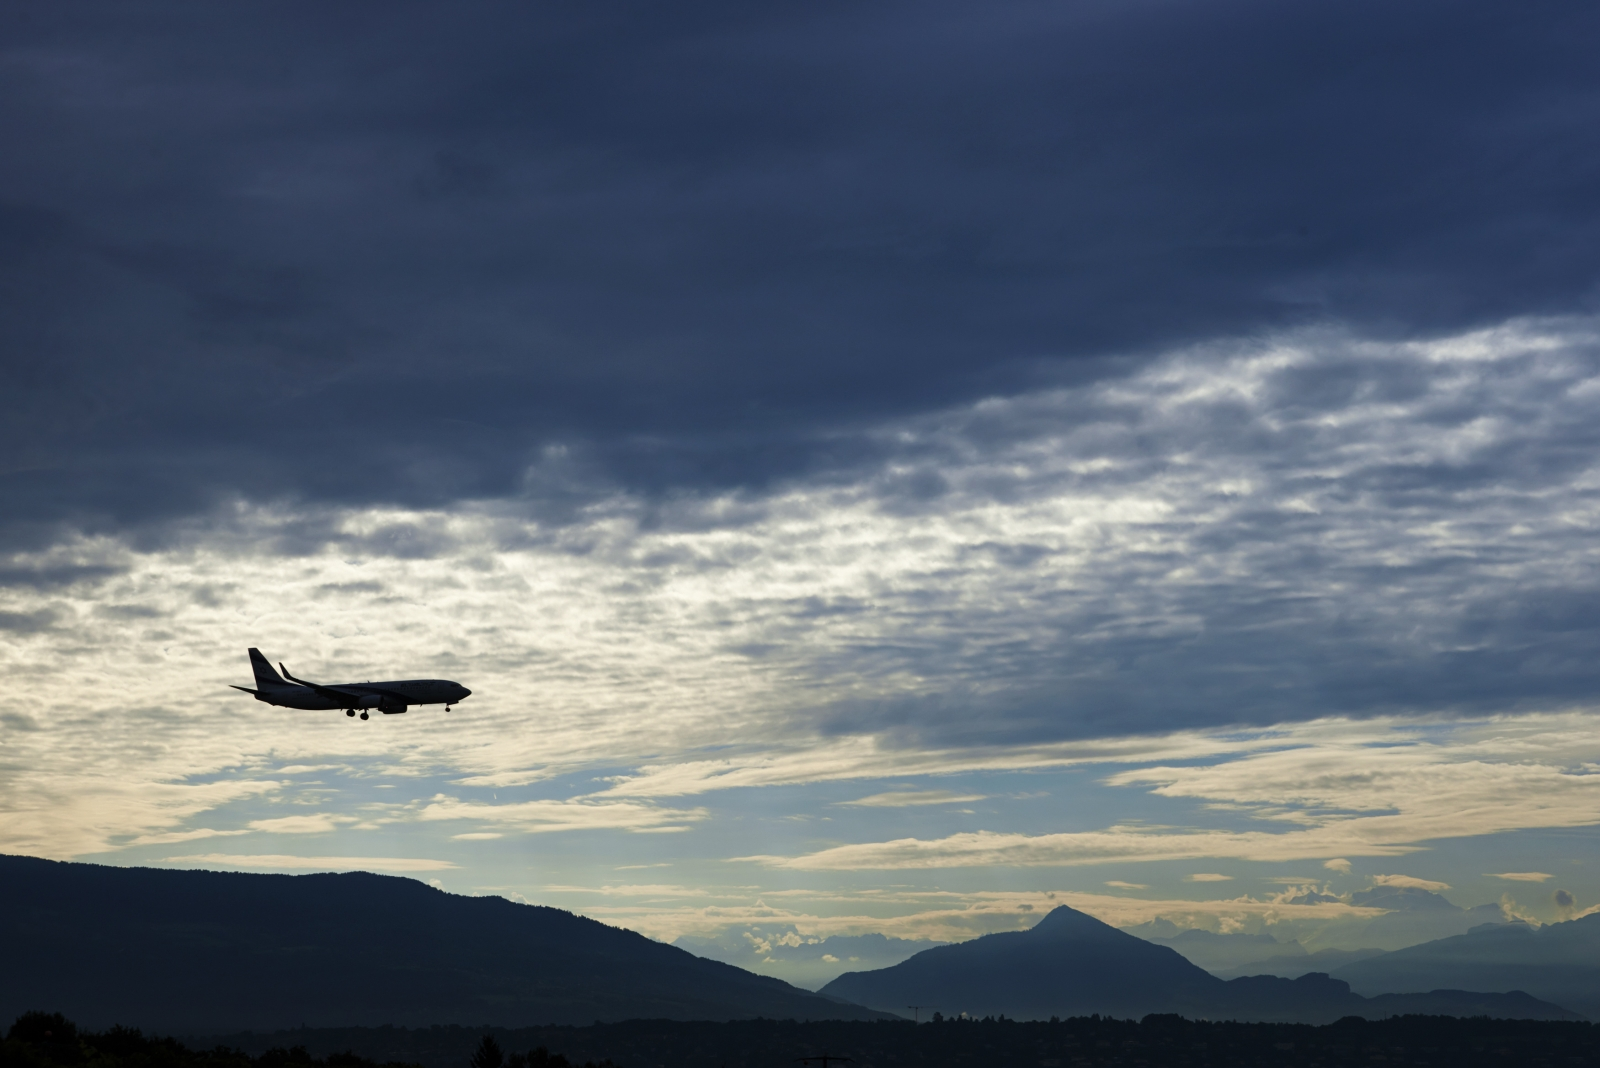 An El Al Airlines aircraft prepares for landing in Cointrin airport during sunrise over the Mont Blanc in Geneva September 9, 2014